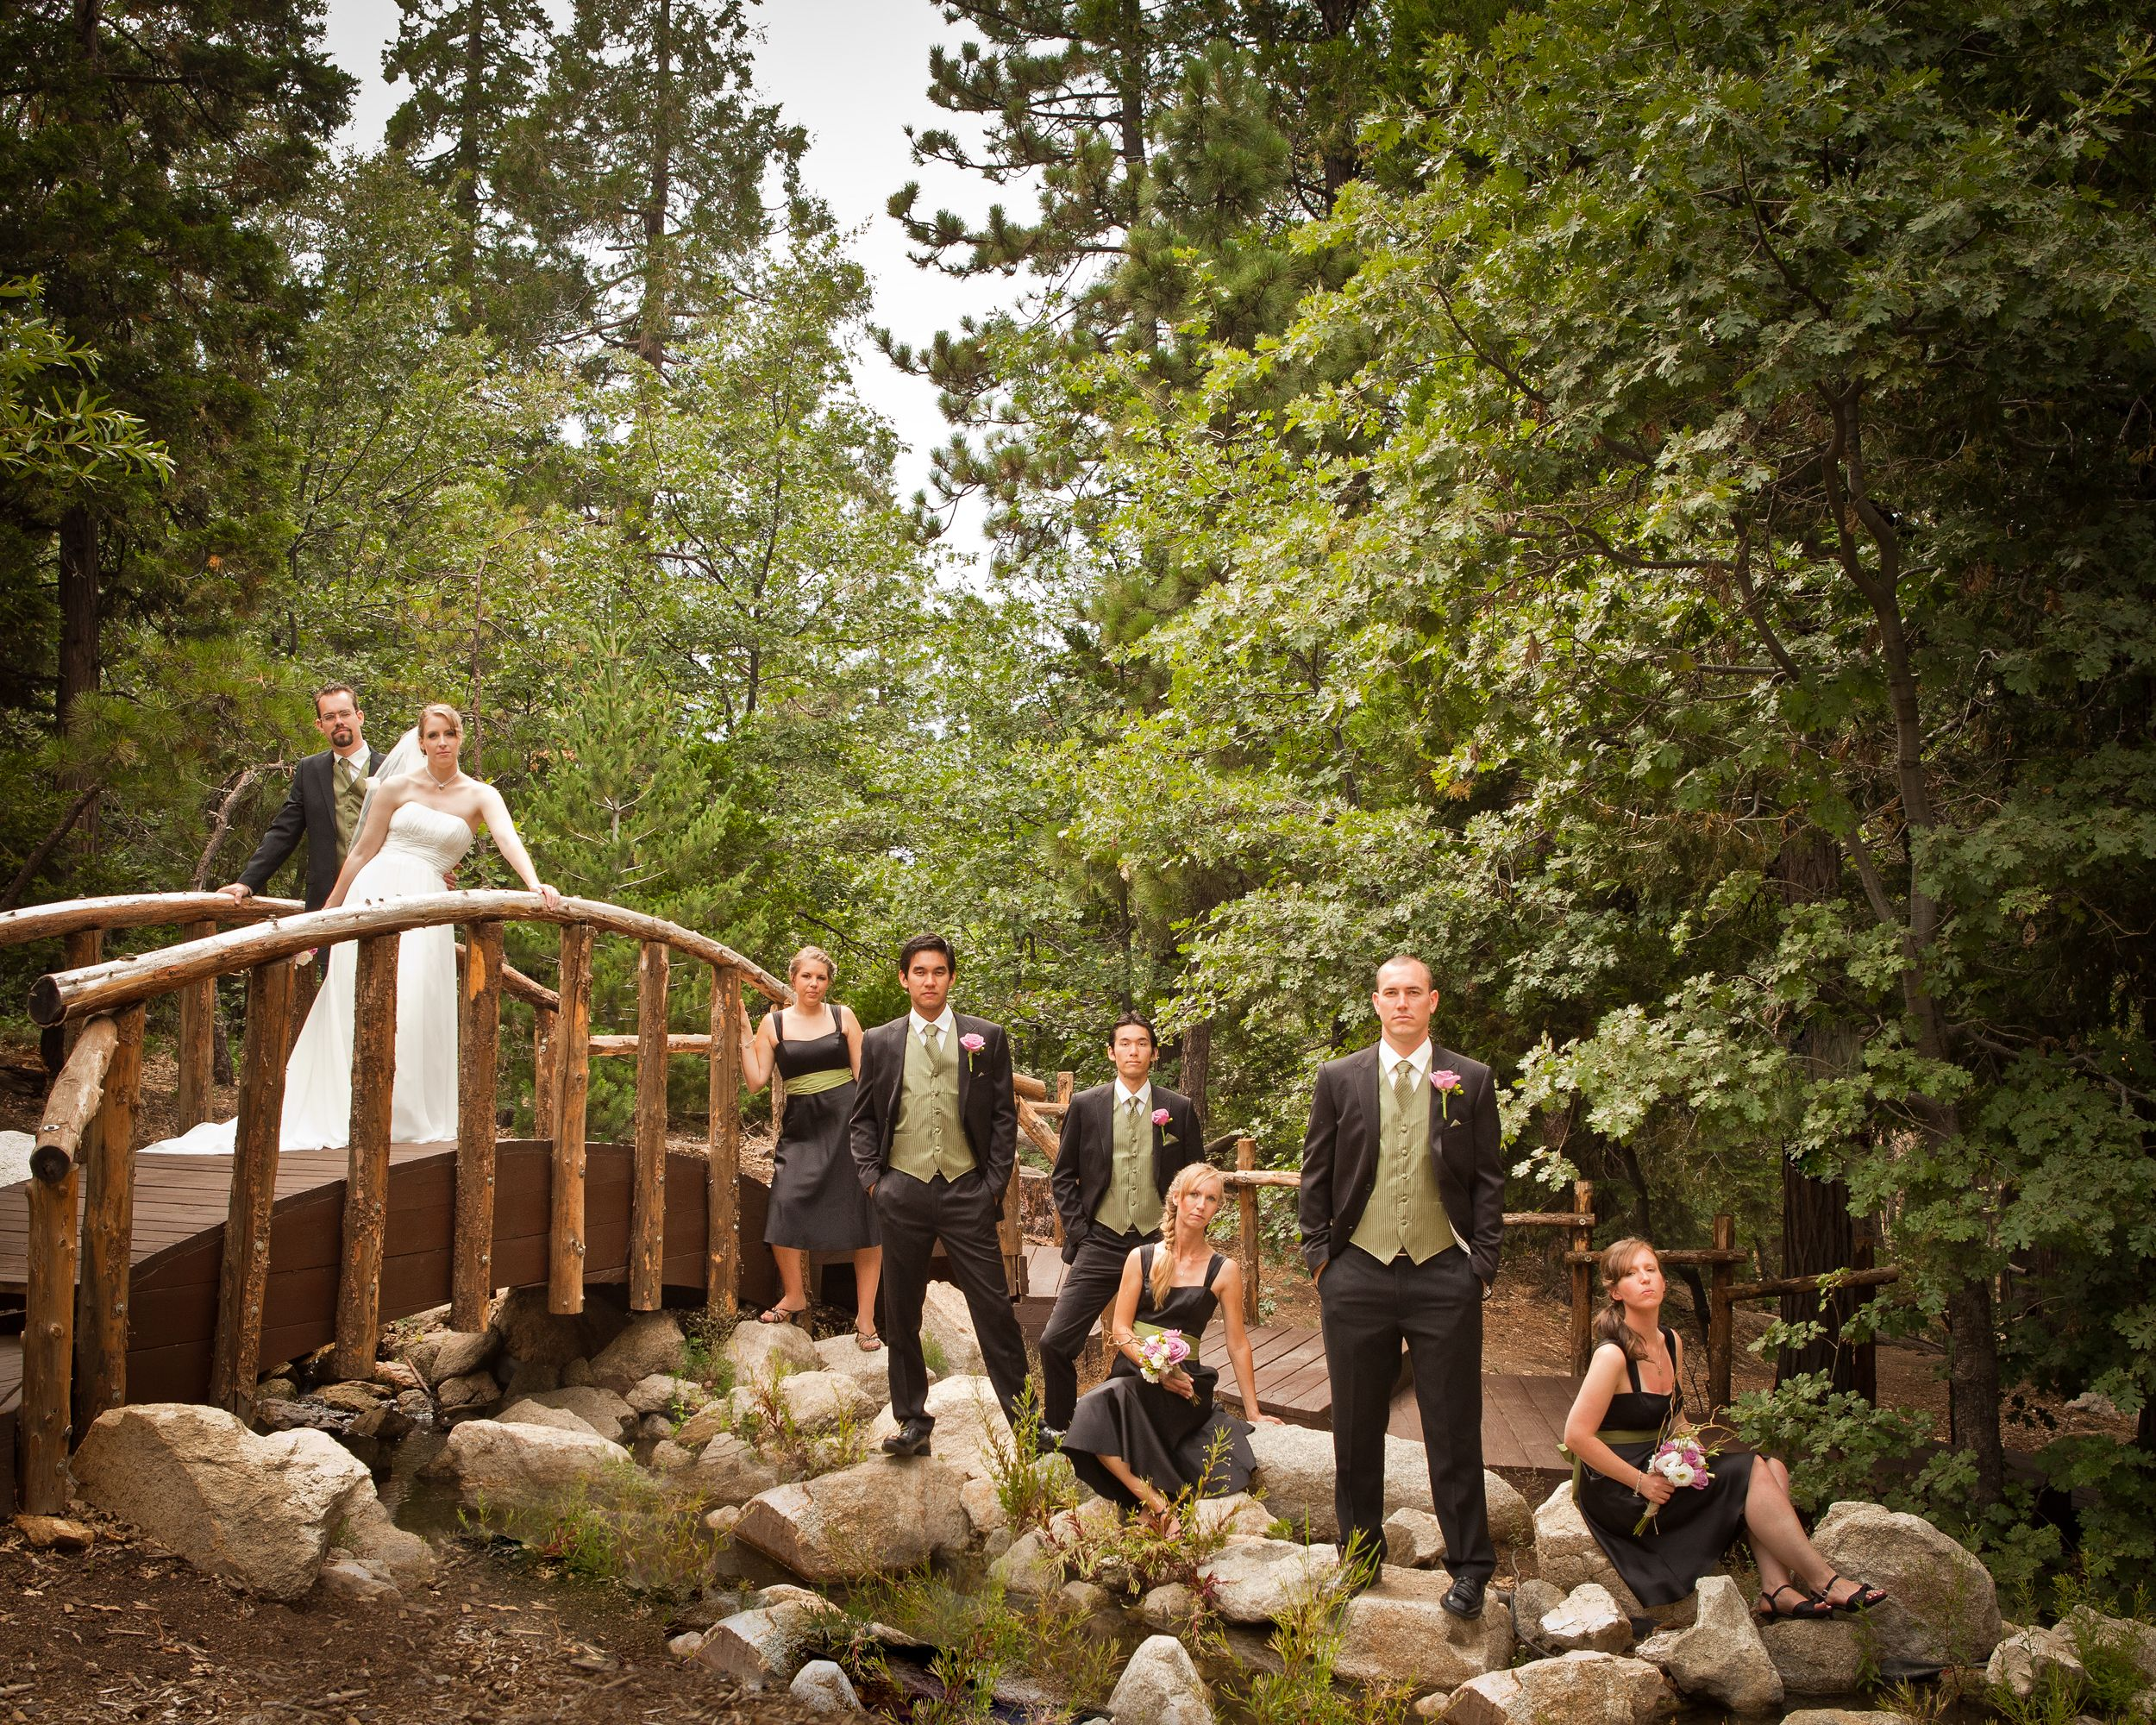 Wedding Party Pine Rose Weddings Lake Arrowhead California Enchanted Forest Venue